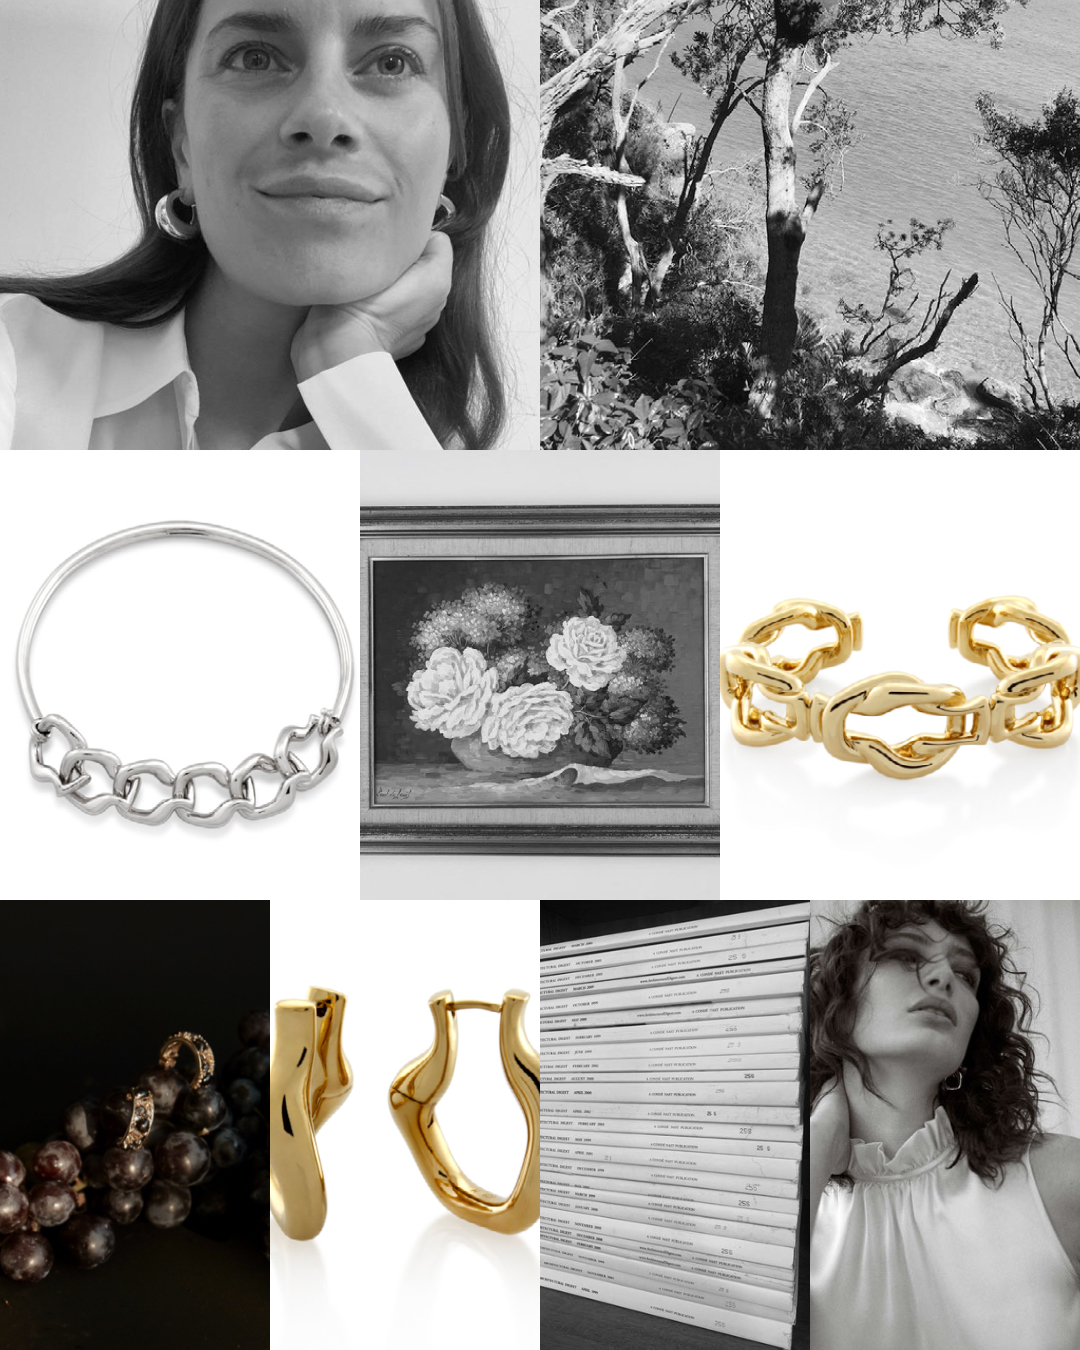 Meet Nat Triglone: creative director and founder of Mineraleir